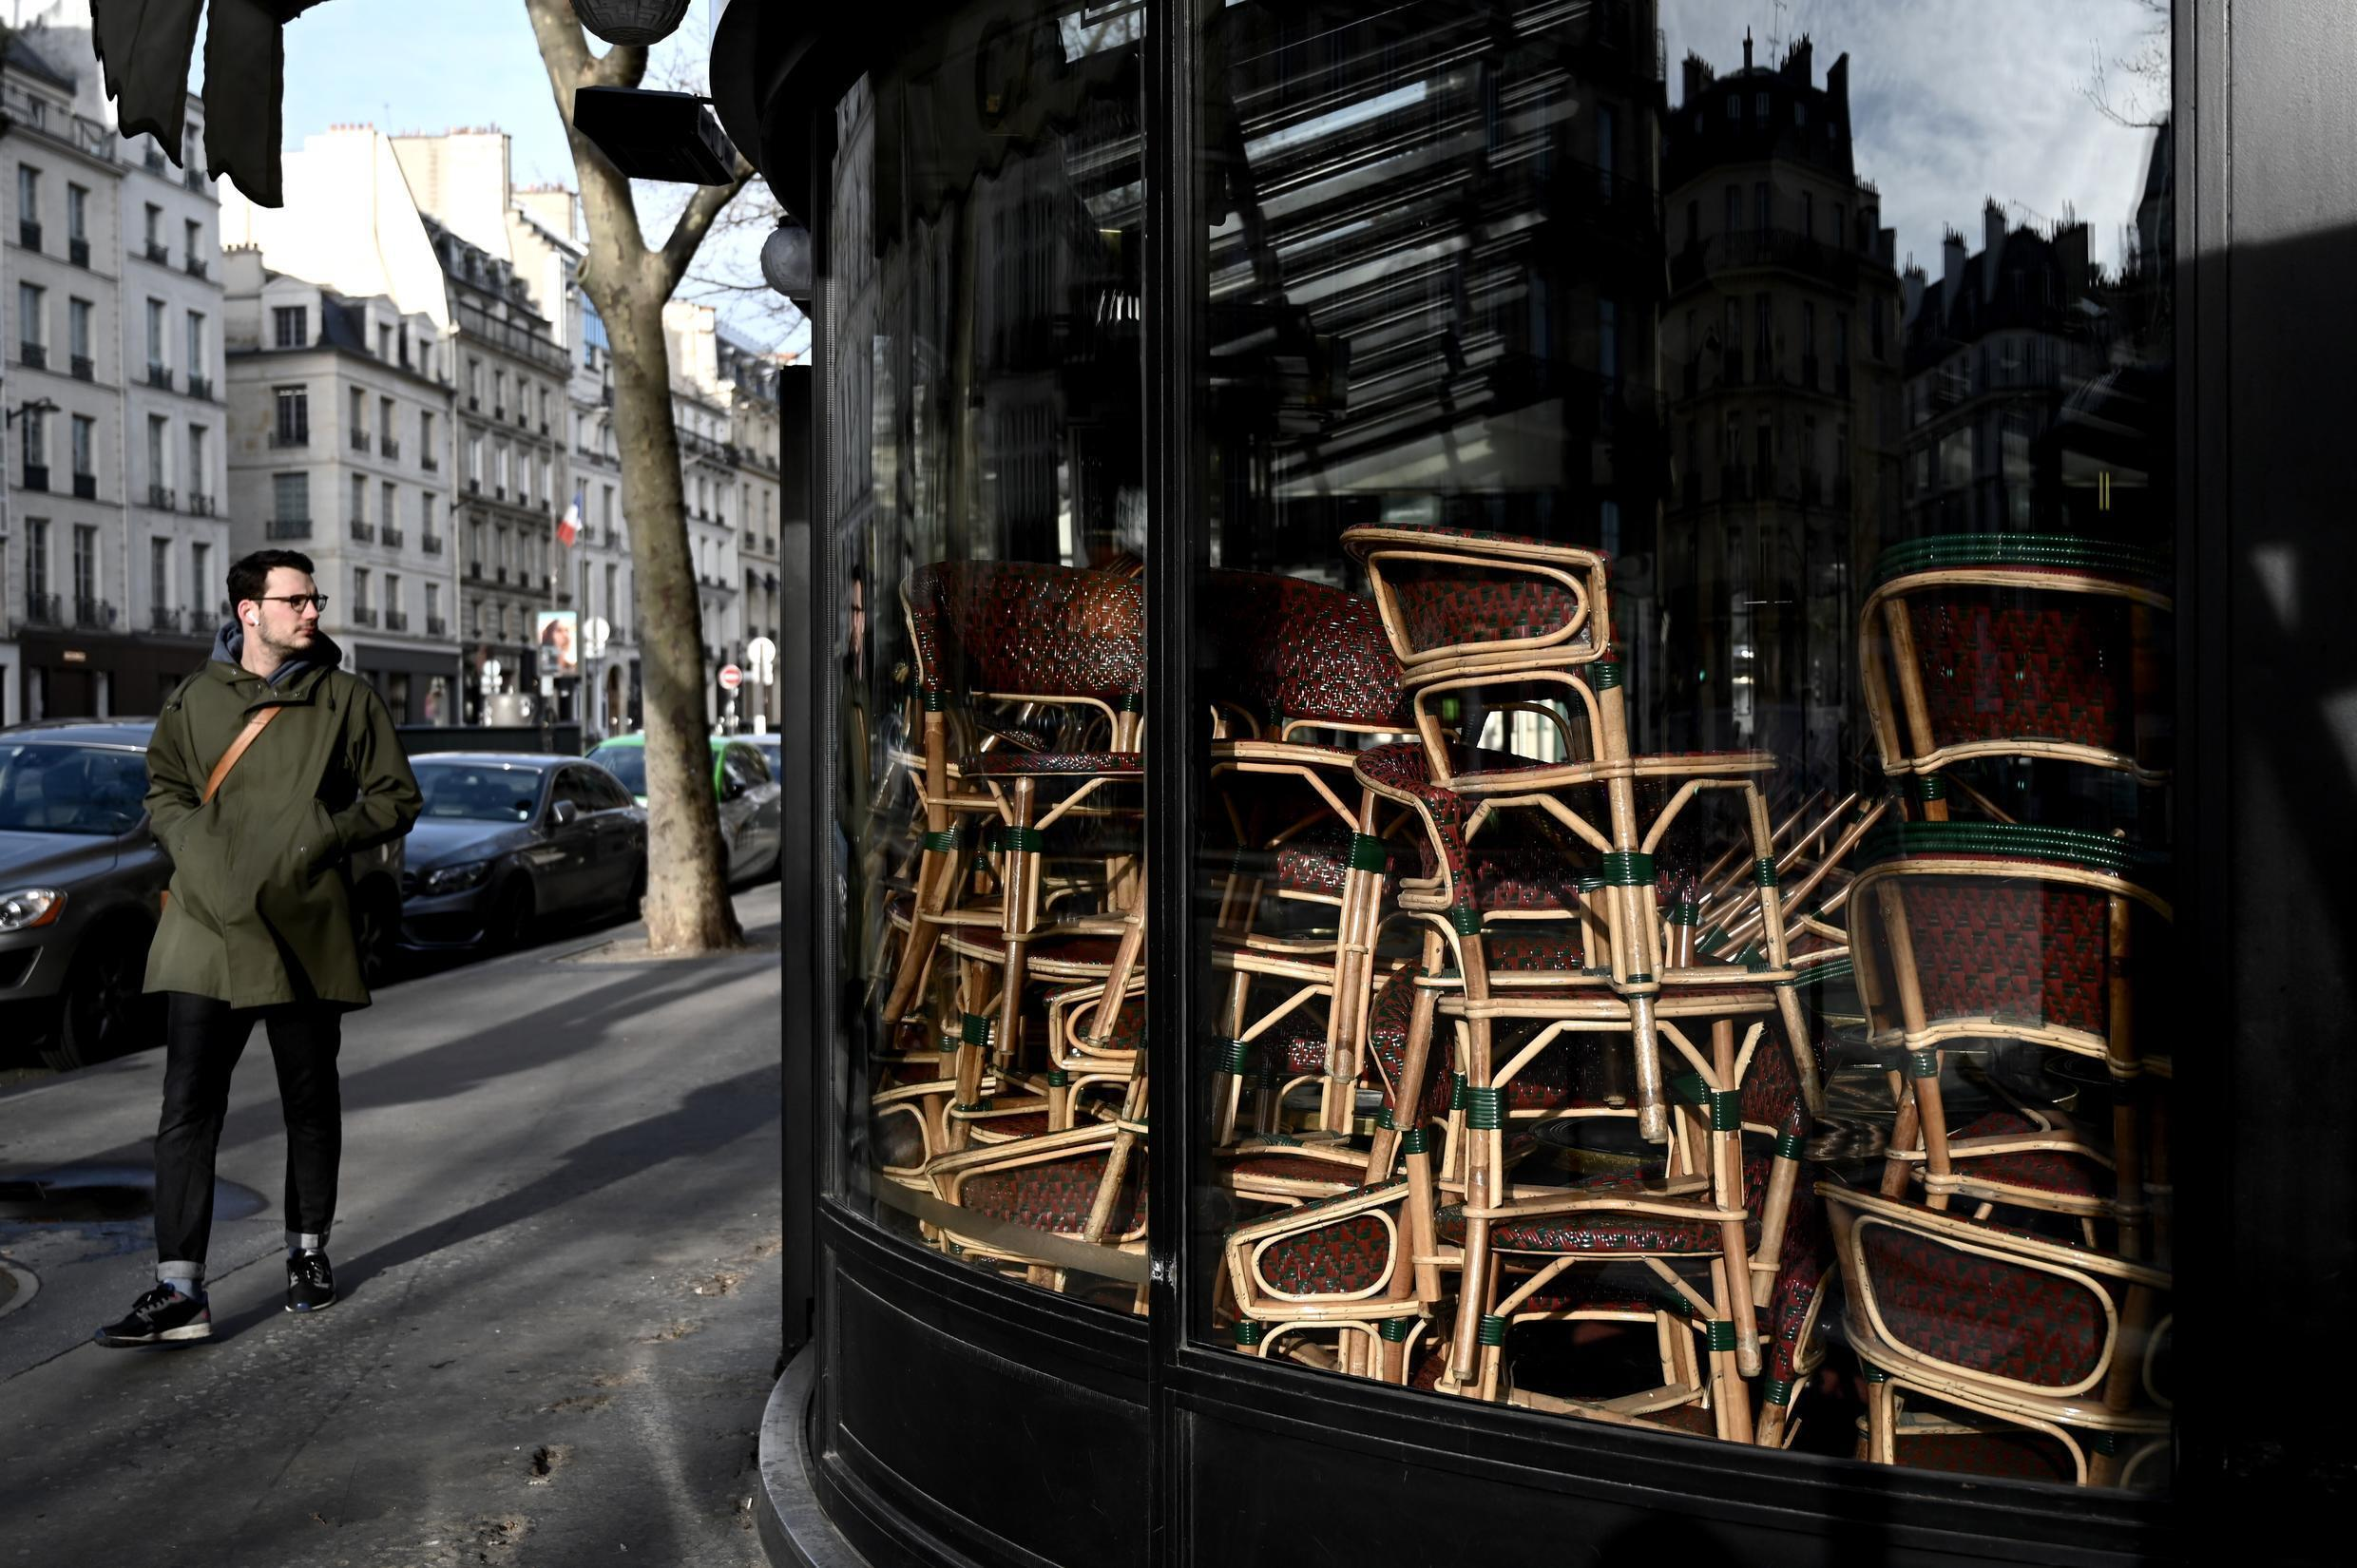 A man walks by the shuttered Café de Flore on Sunday, March 15, 2020, after restaurants were ordered to close as of midnight Saturday.